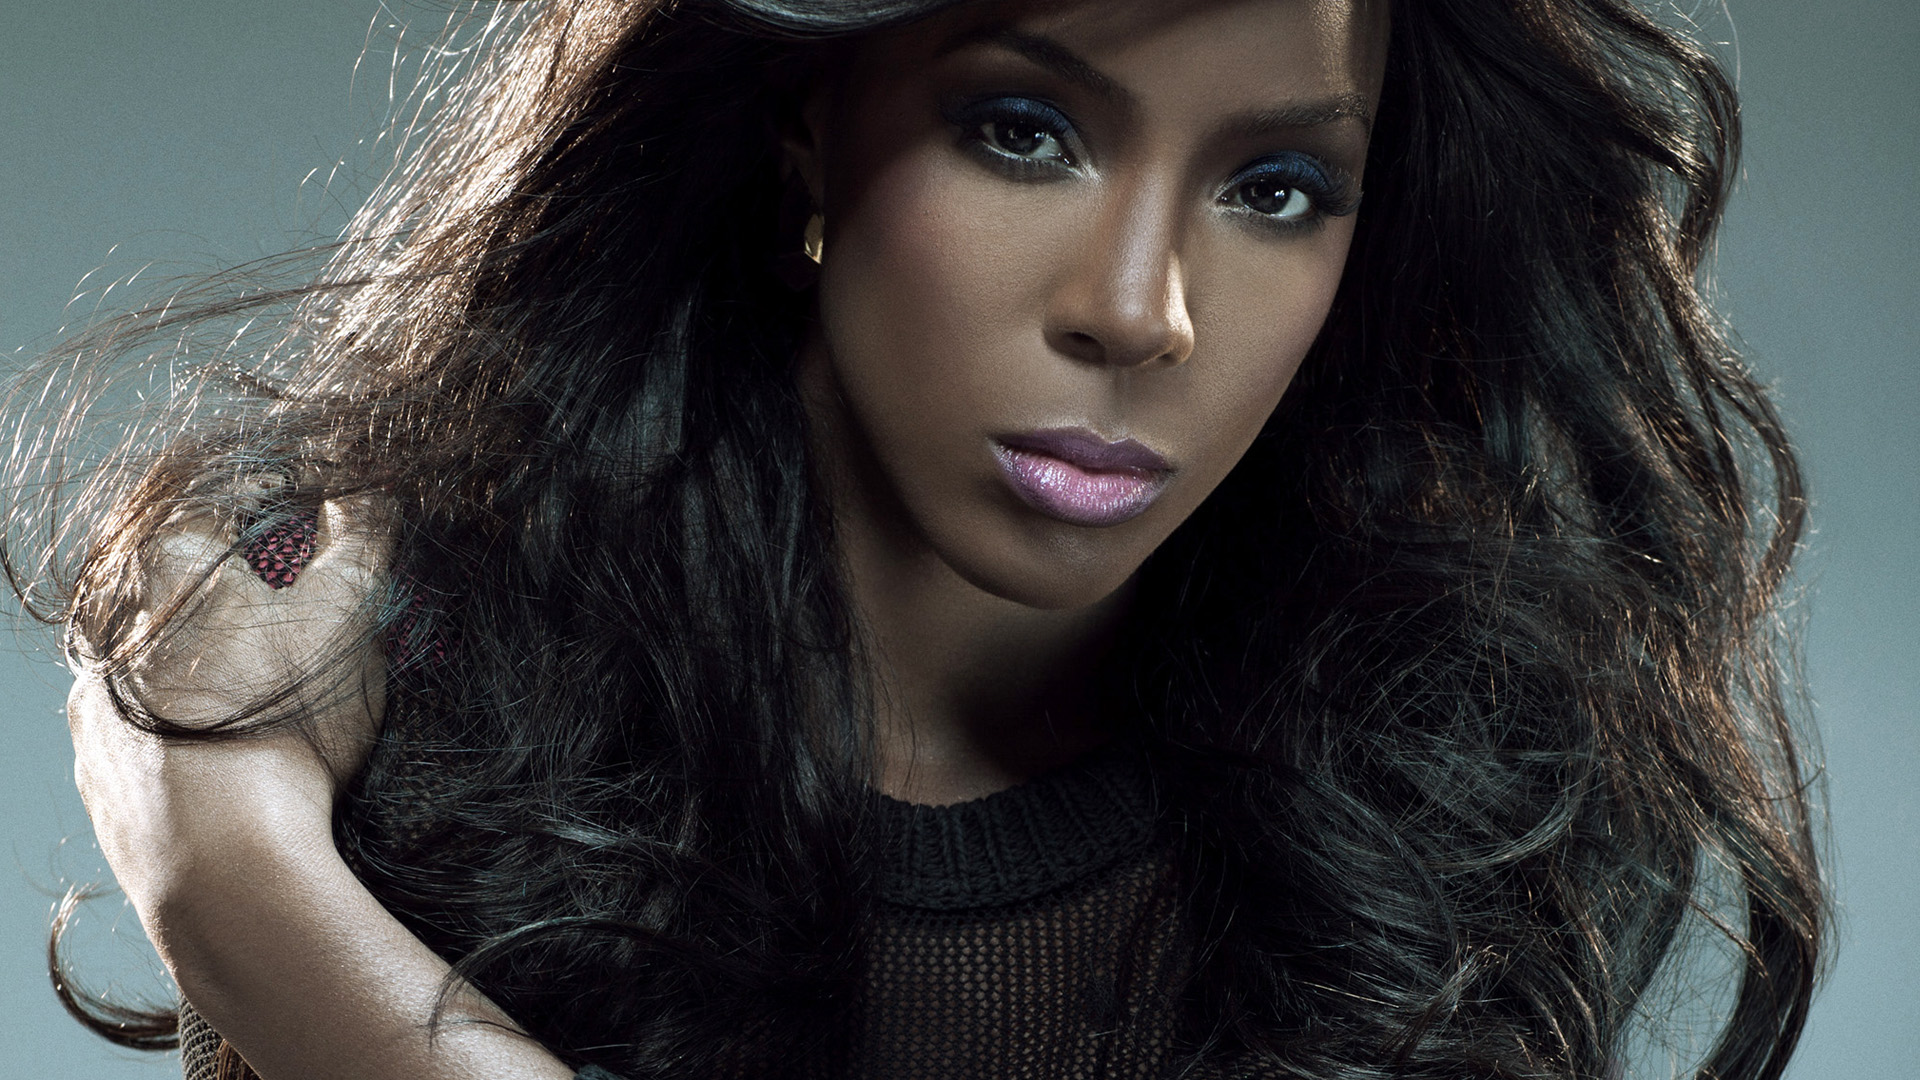 Dirty Laundry av Kelly Rowland